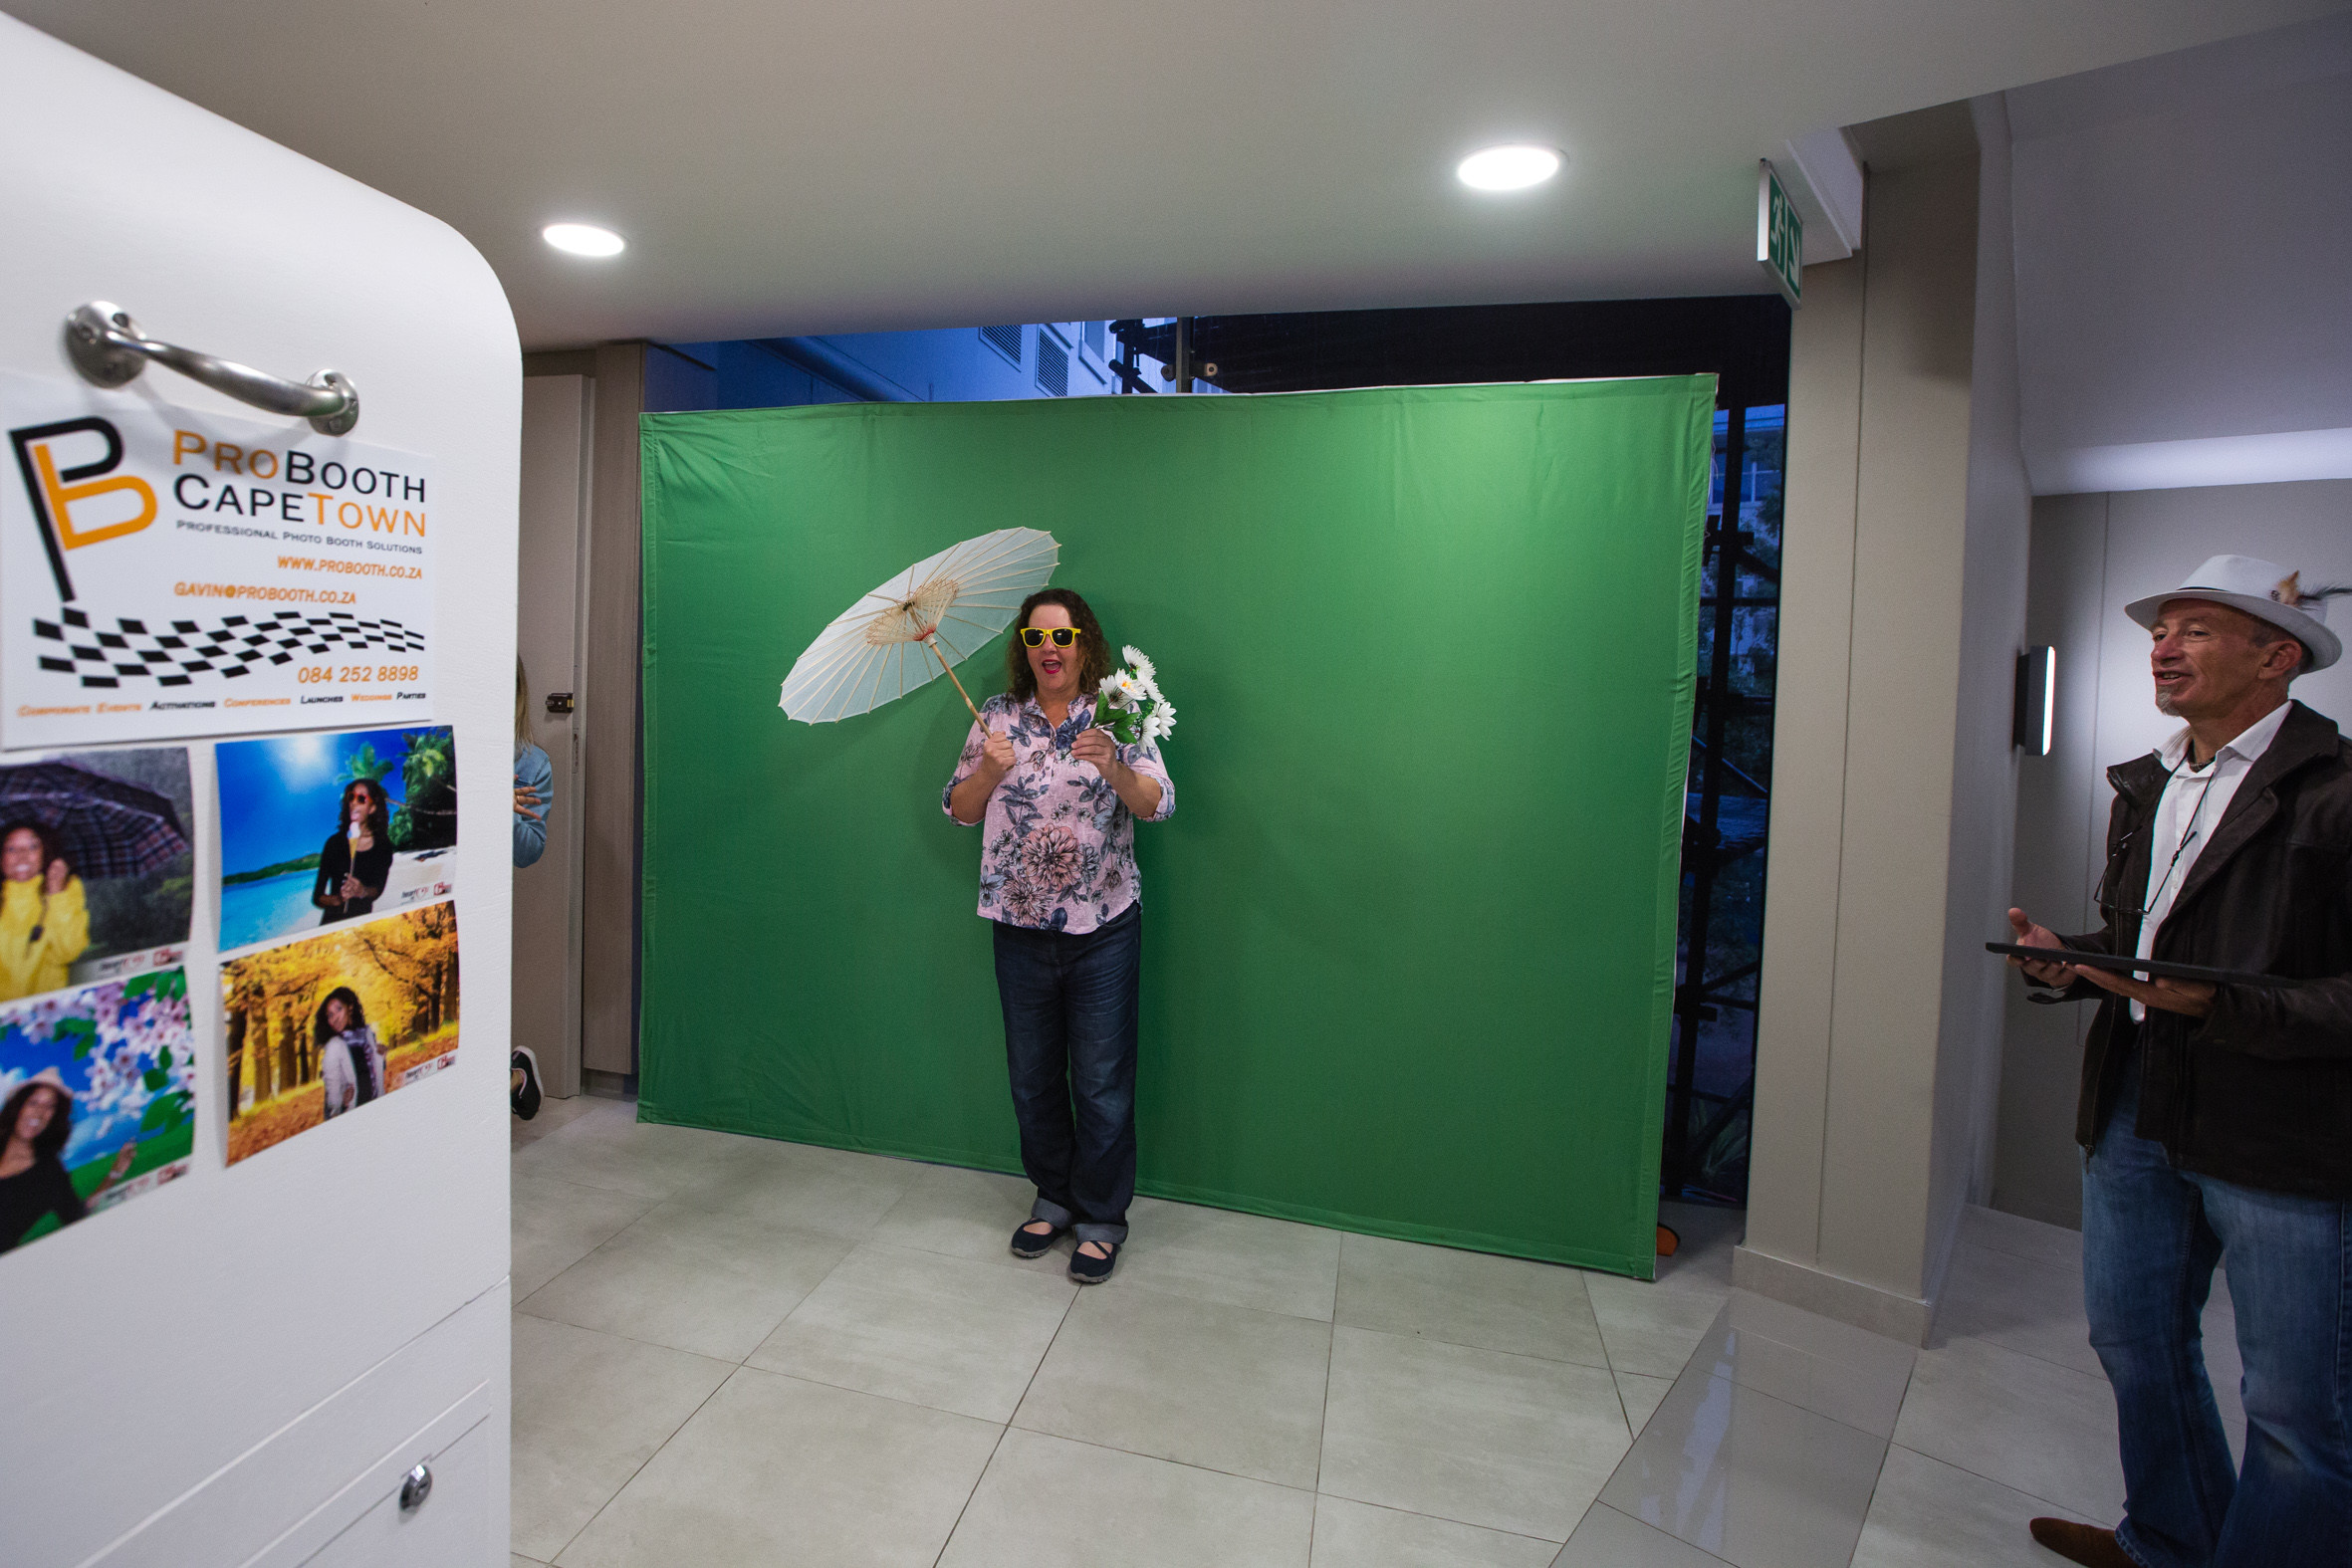 Photo Booth at the Mediamark ambush marketing stunt